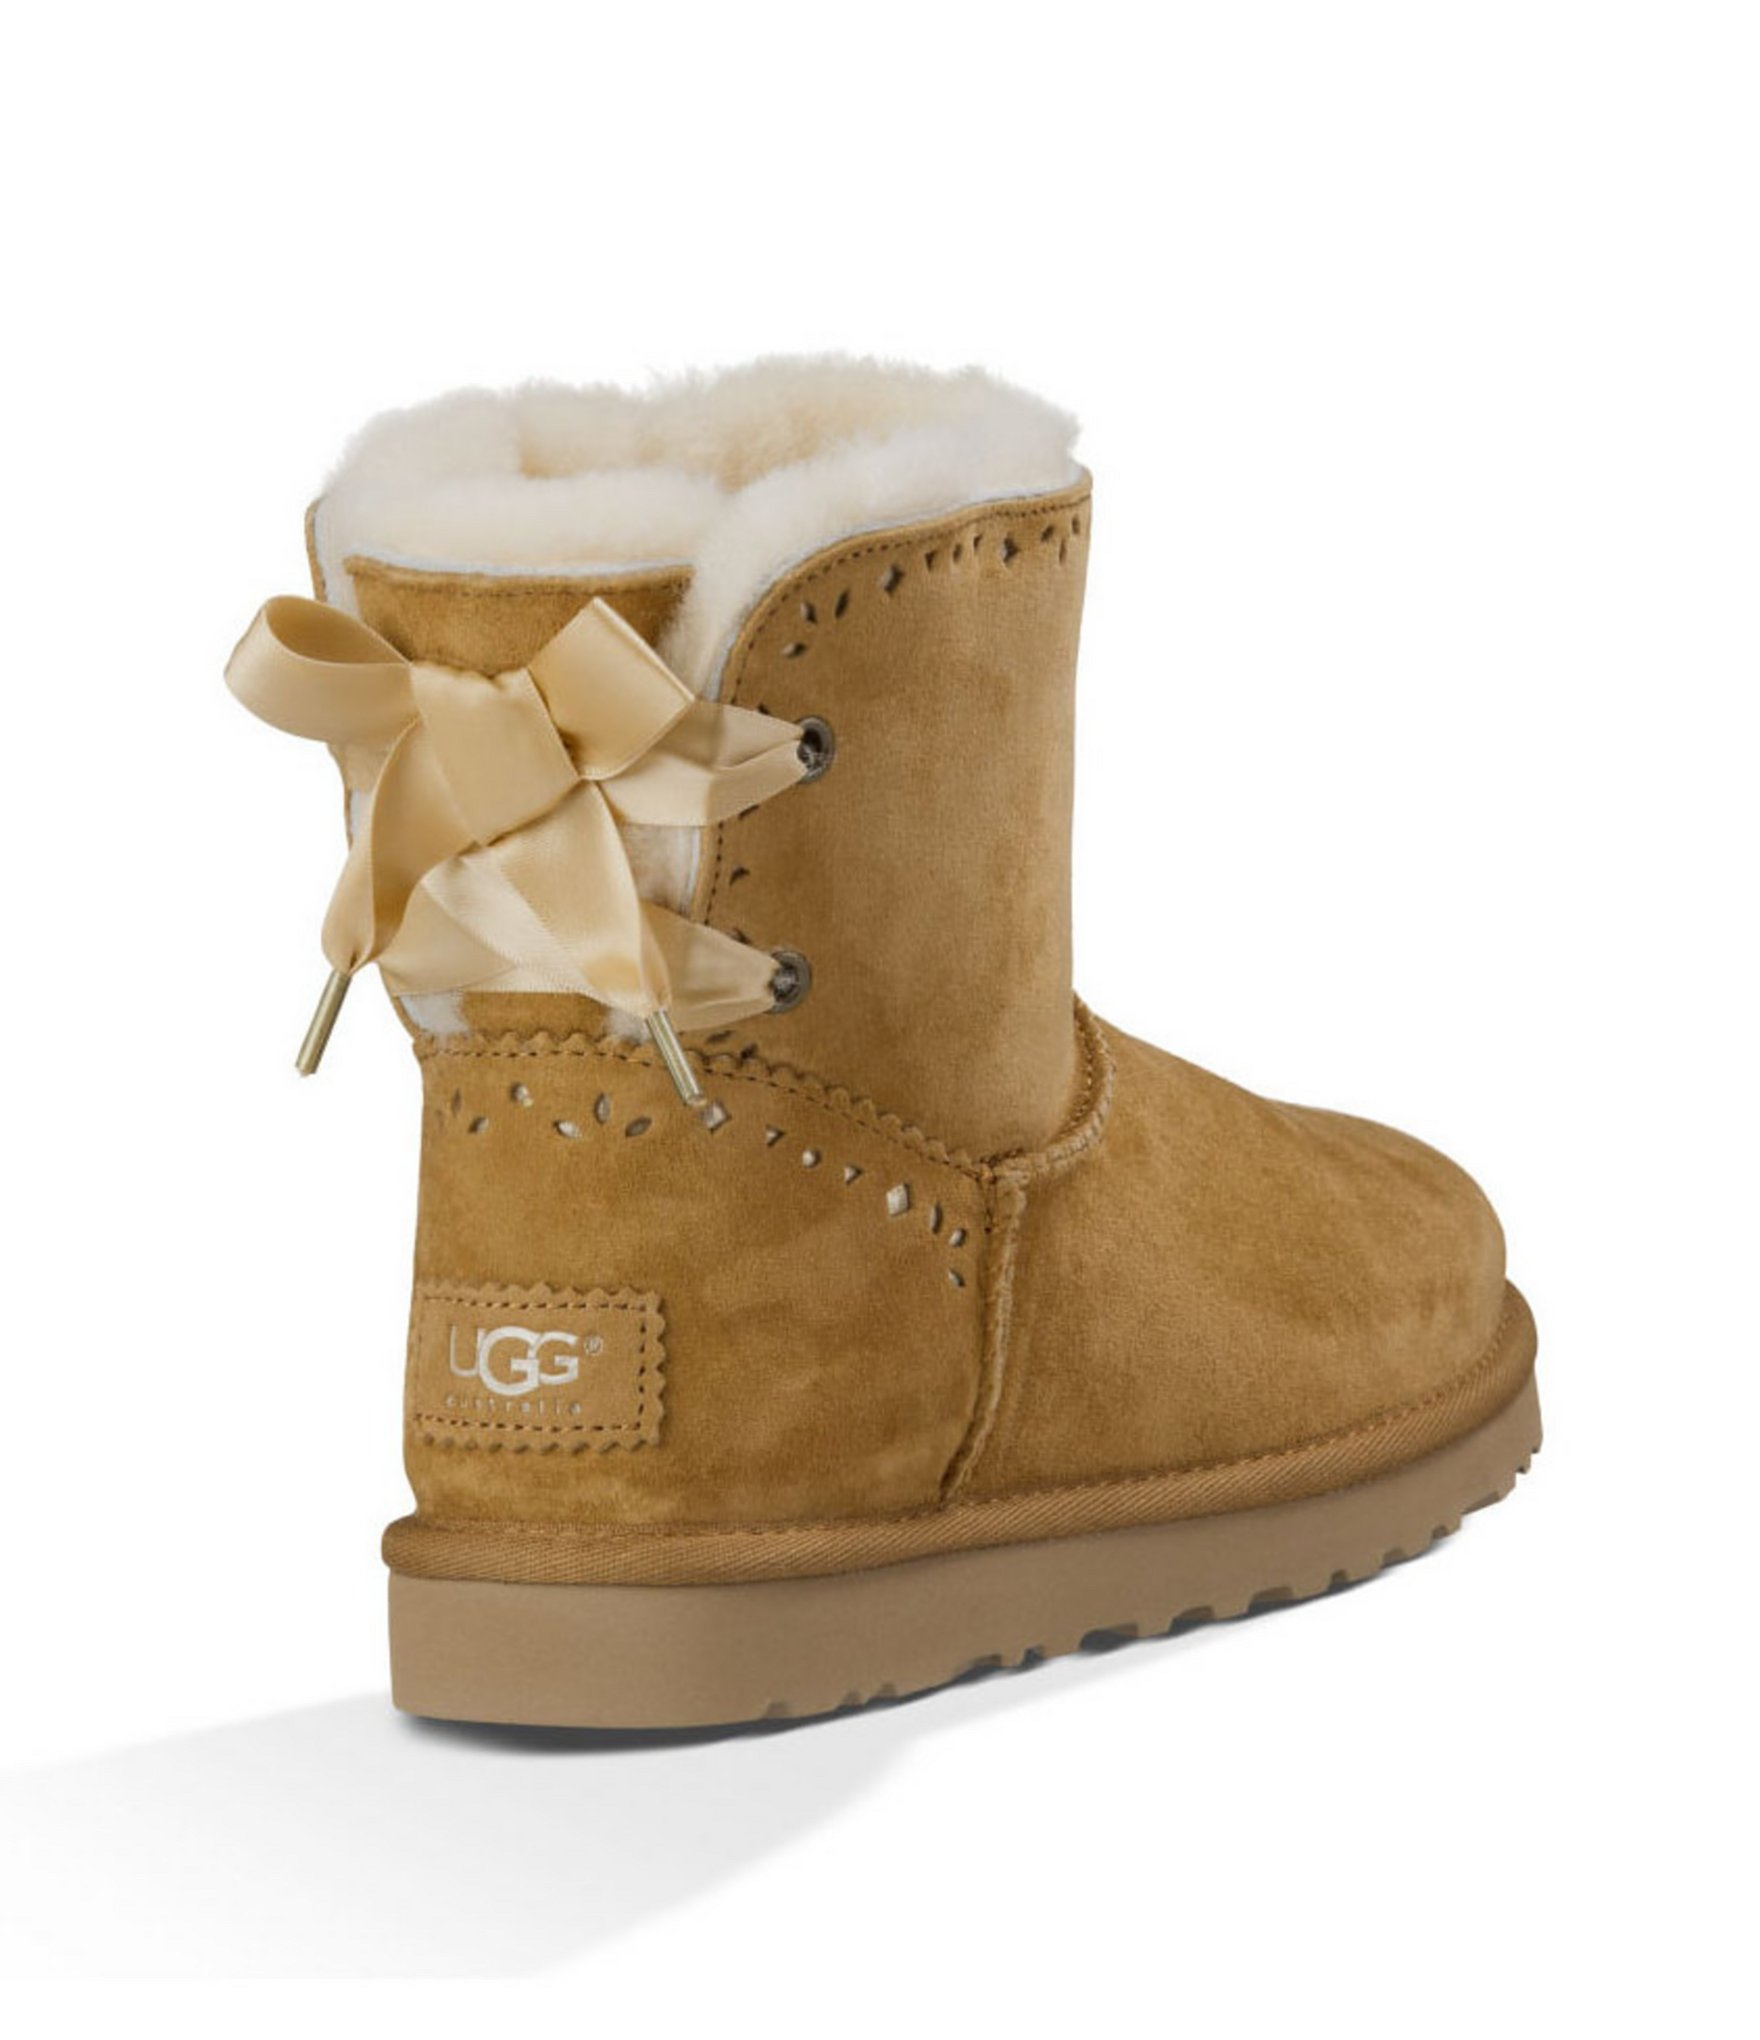 best place to buy uggs for cheap